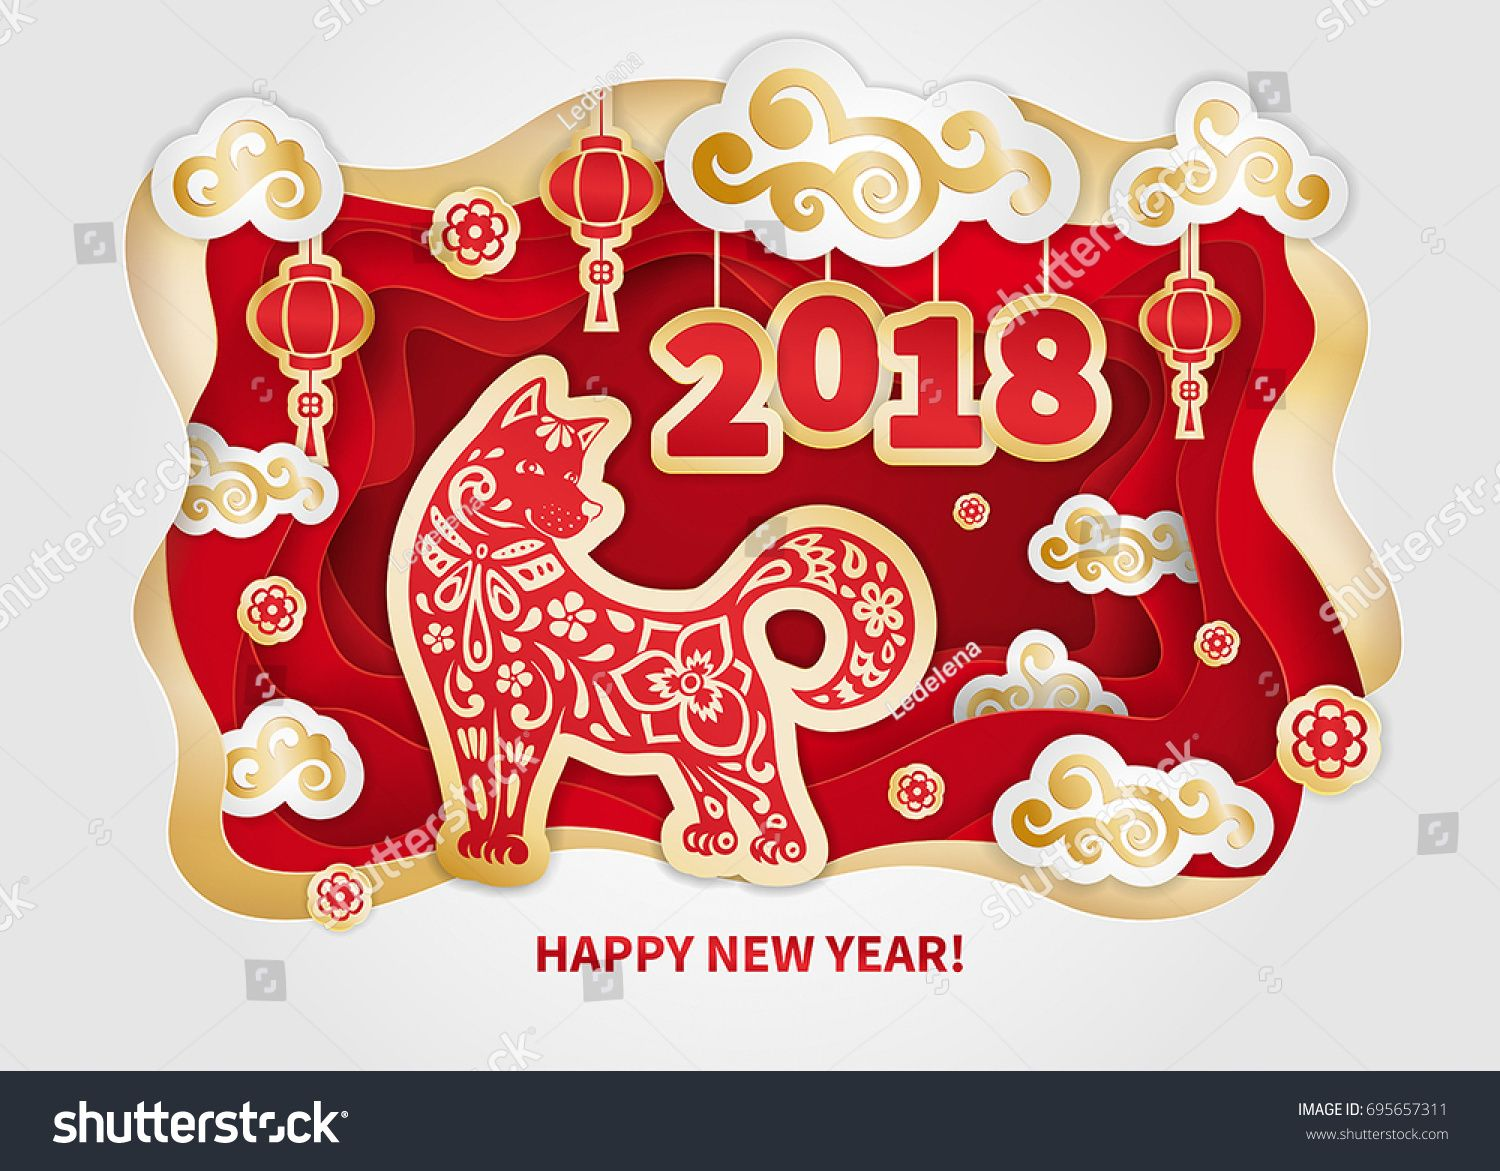 Dog Is A Symbol Of The Chinese New Year Paper Cut Art Design For Greeting Cards